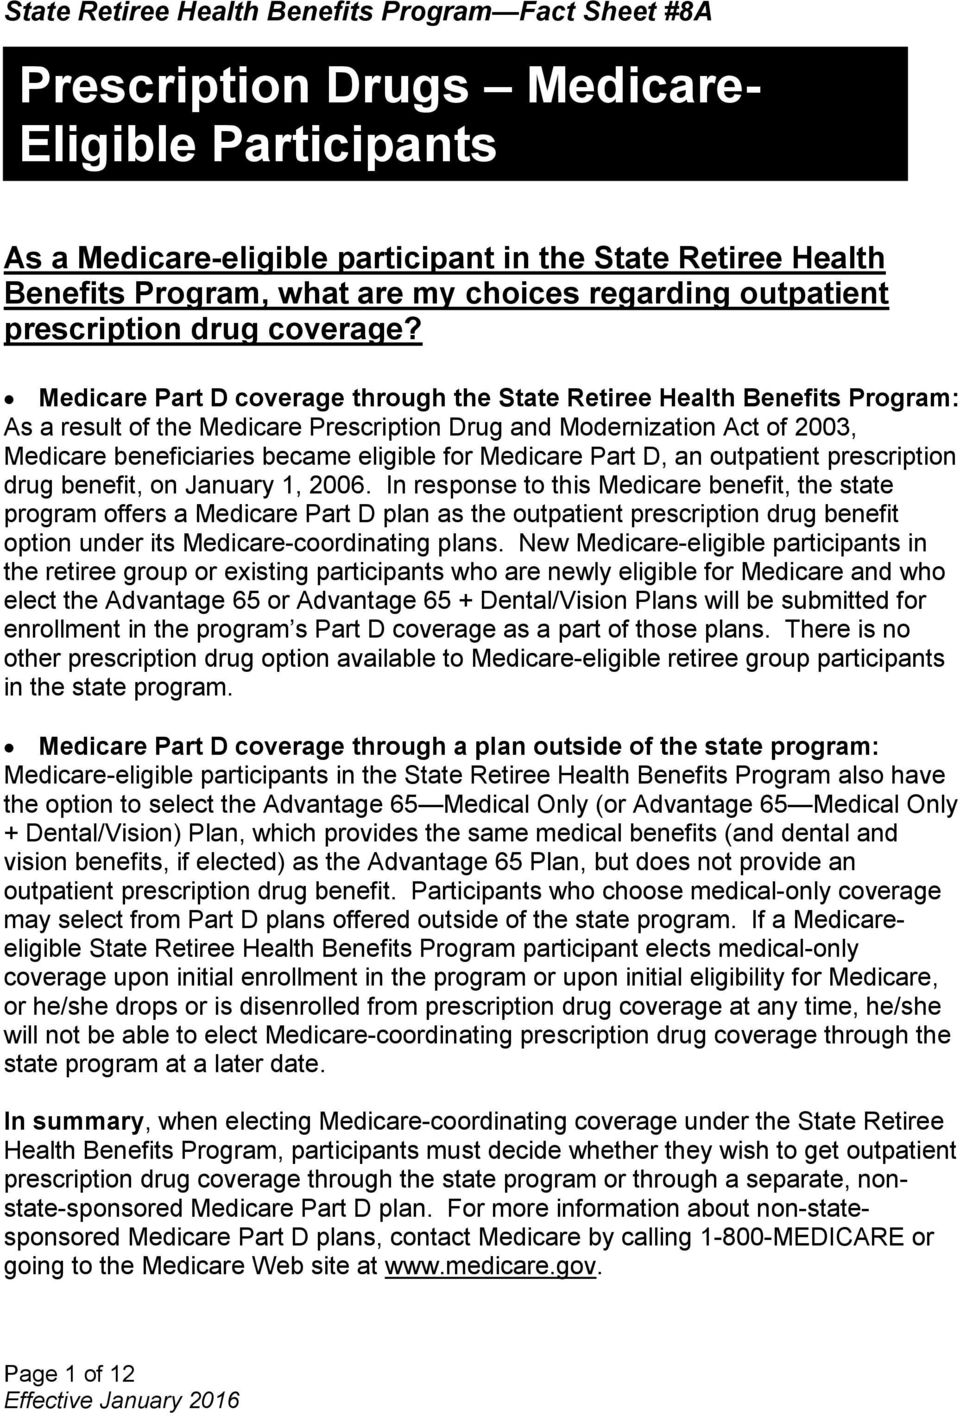 Medicare Part D coverage through the State Retiree Health Benefits Program: As a result of the Medicare Prescription Drug and Modernization Act of 2003, Medicare beneficiaries became eligible for